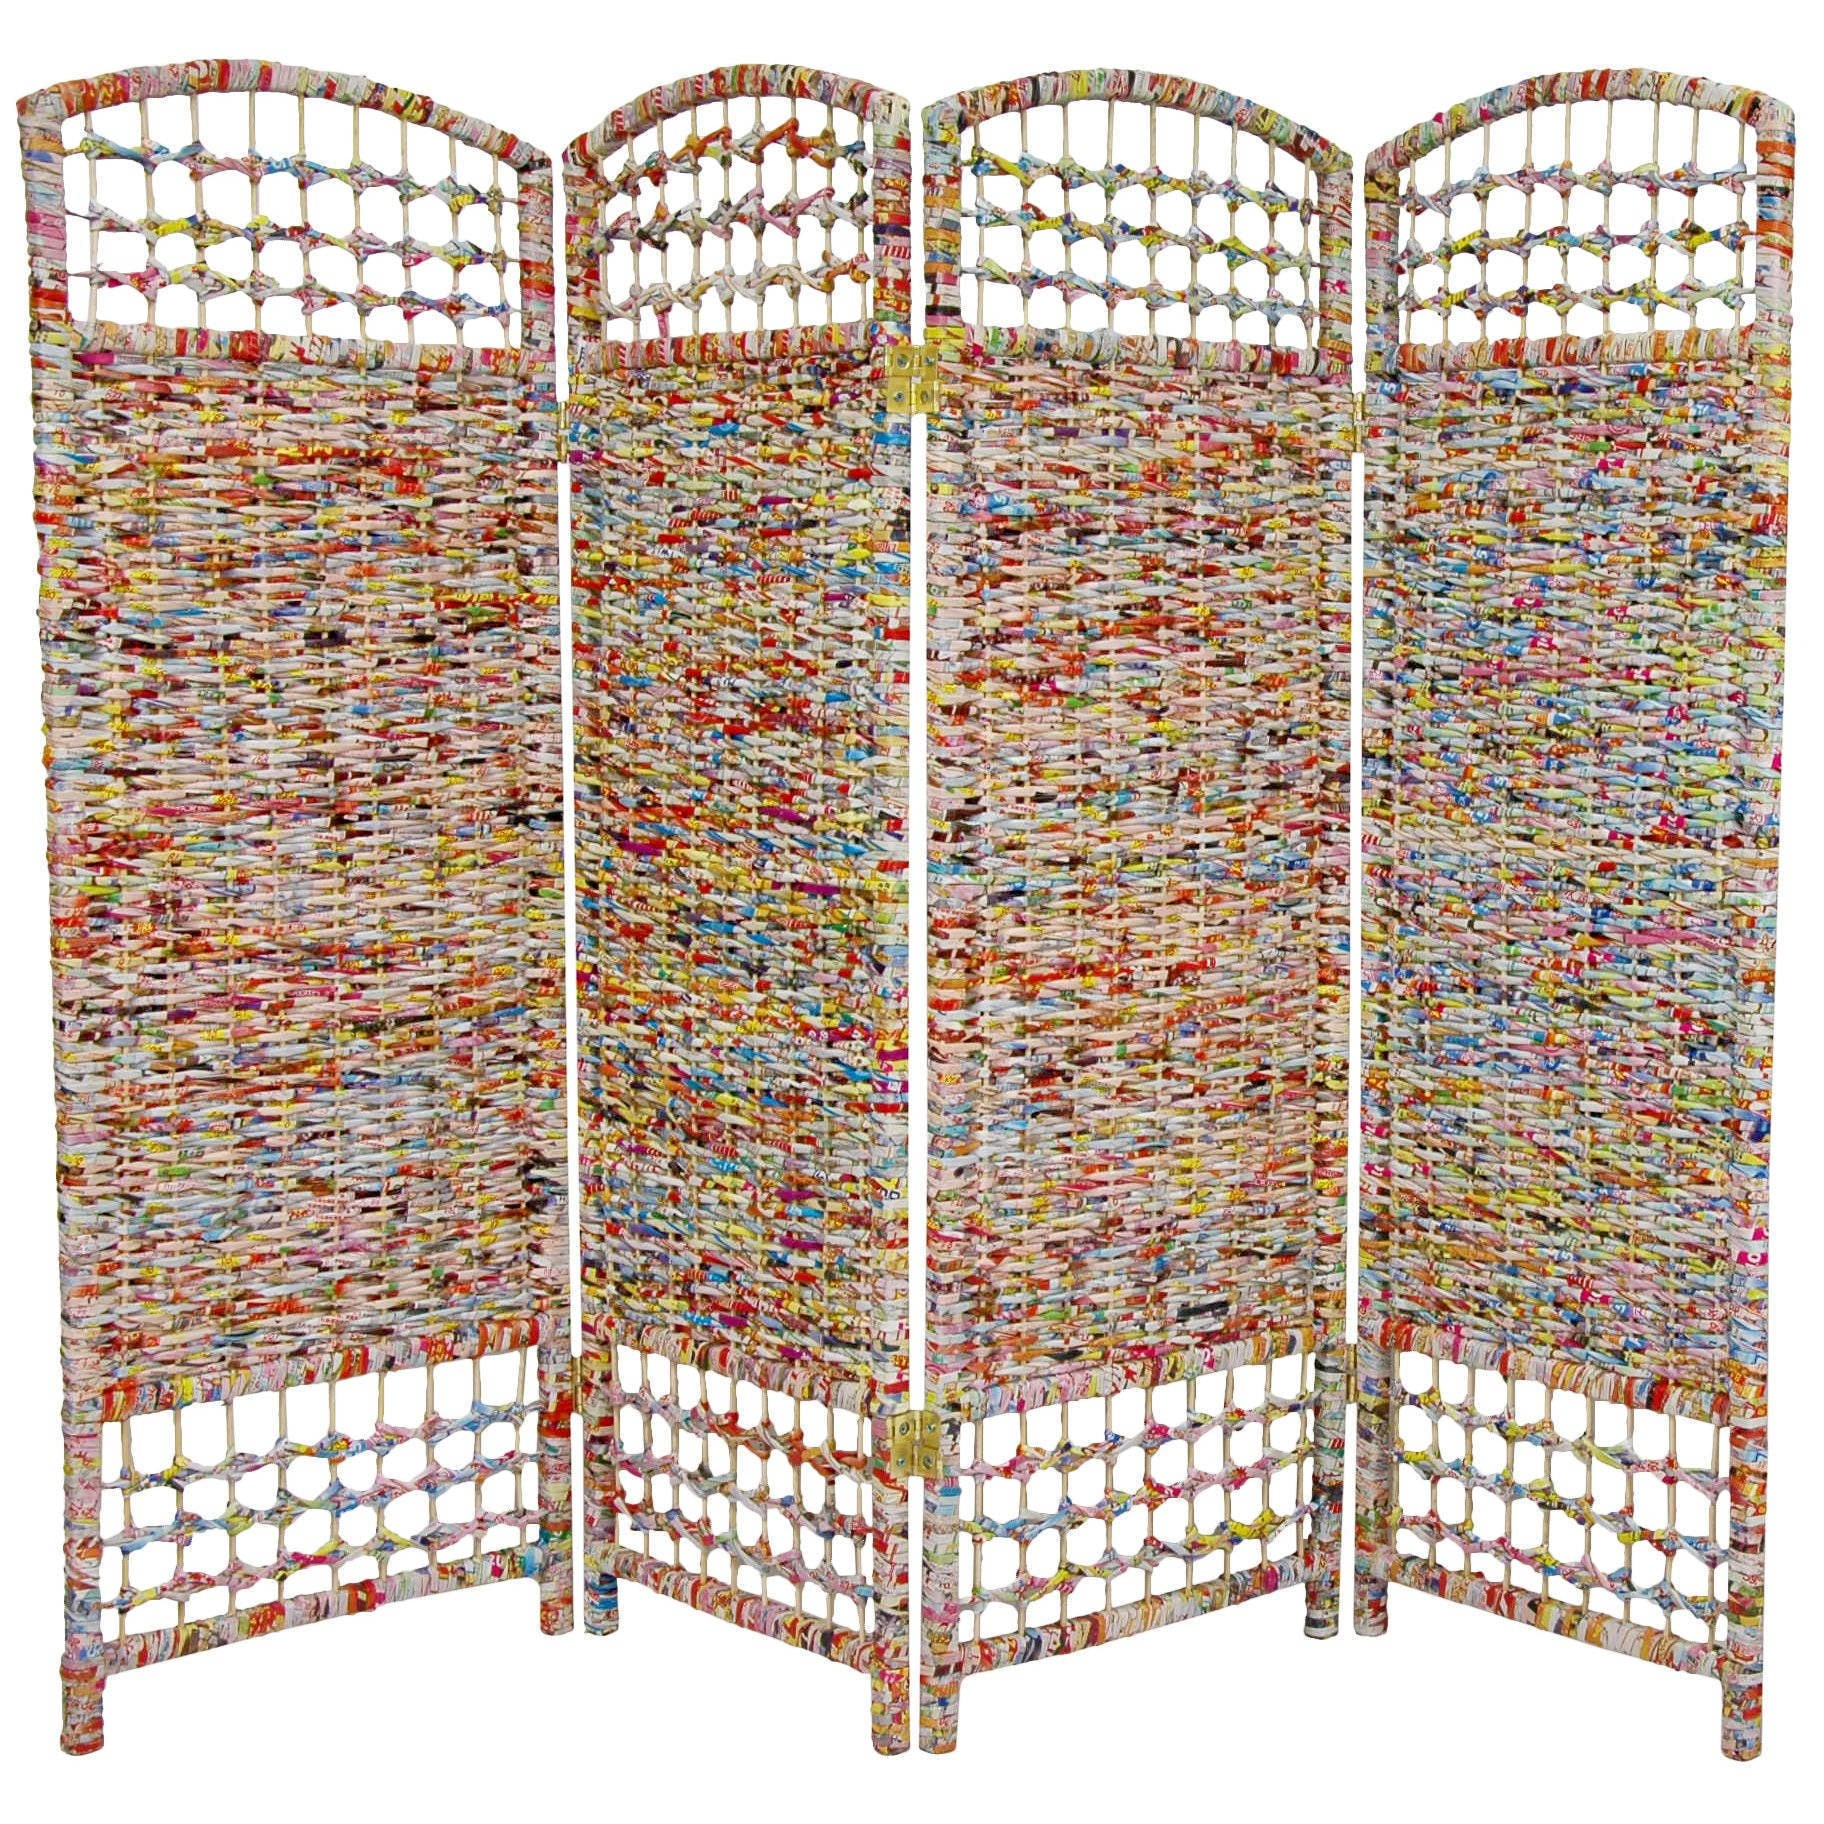 Shop Handmade Recycled Magazine 4 foot Tall Room Divider China